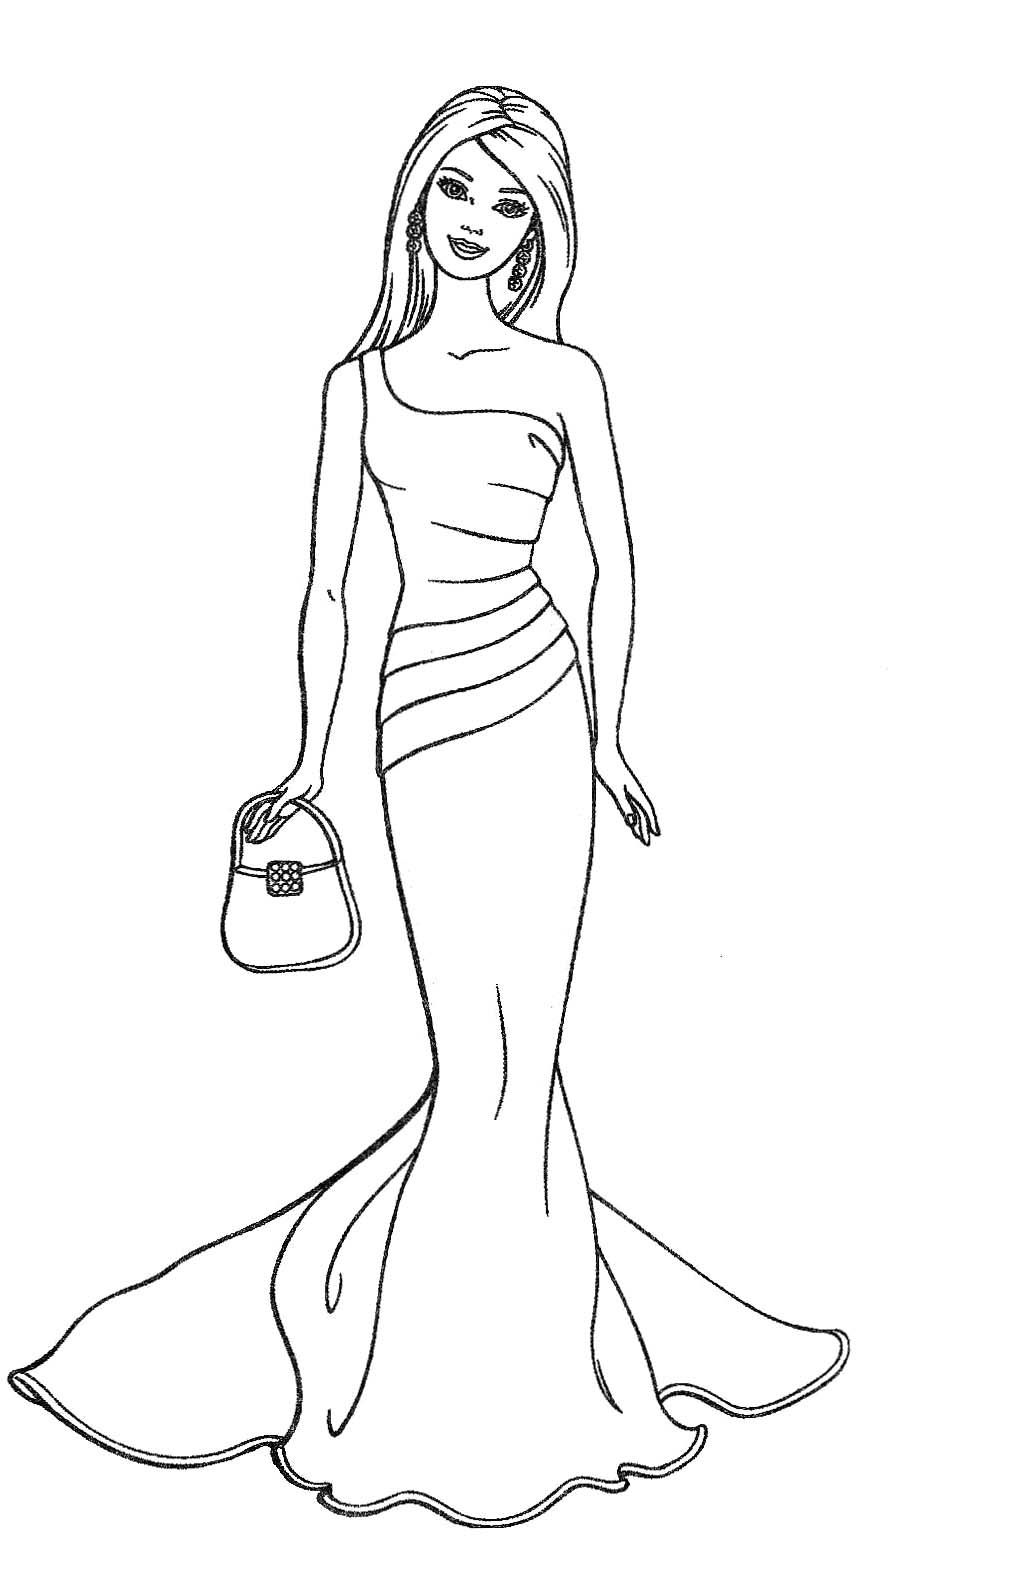 Online coloring book barbie - Barbie Fashion Coloring Page Free Online Printable Coloring Pages Sheets For Kids Get The Latest Free Barbie Fashion Coloring Page Images